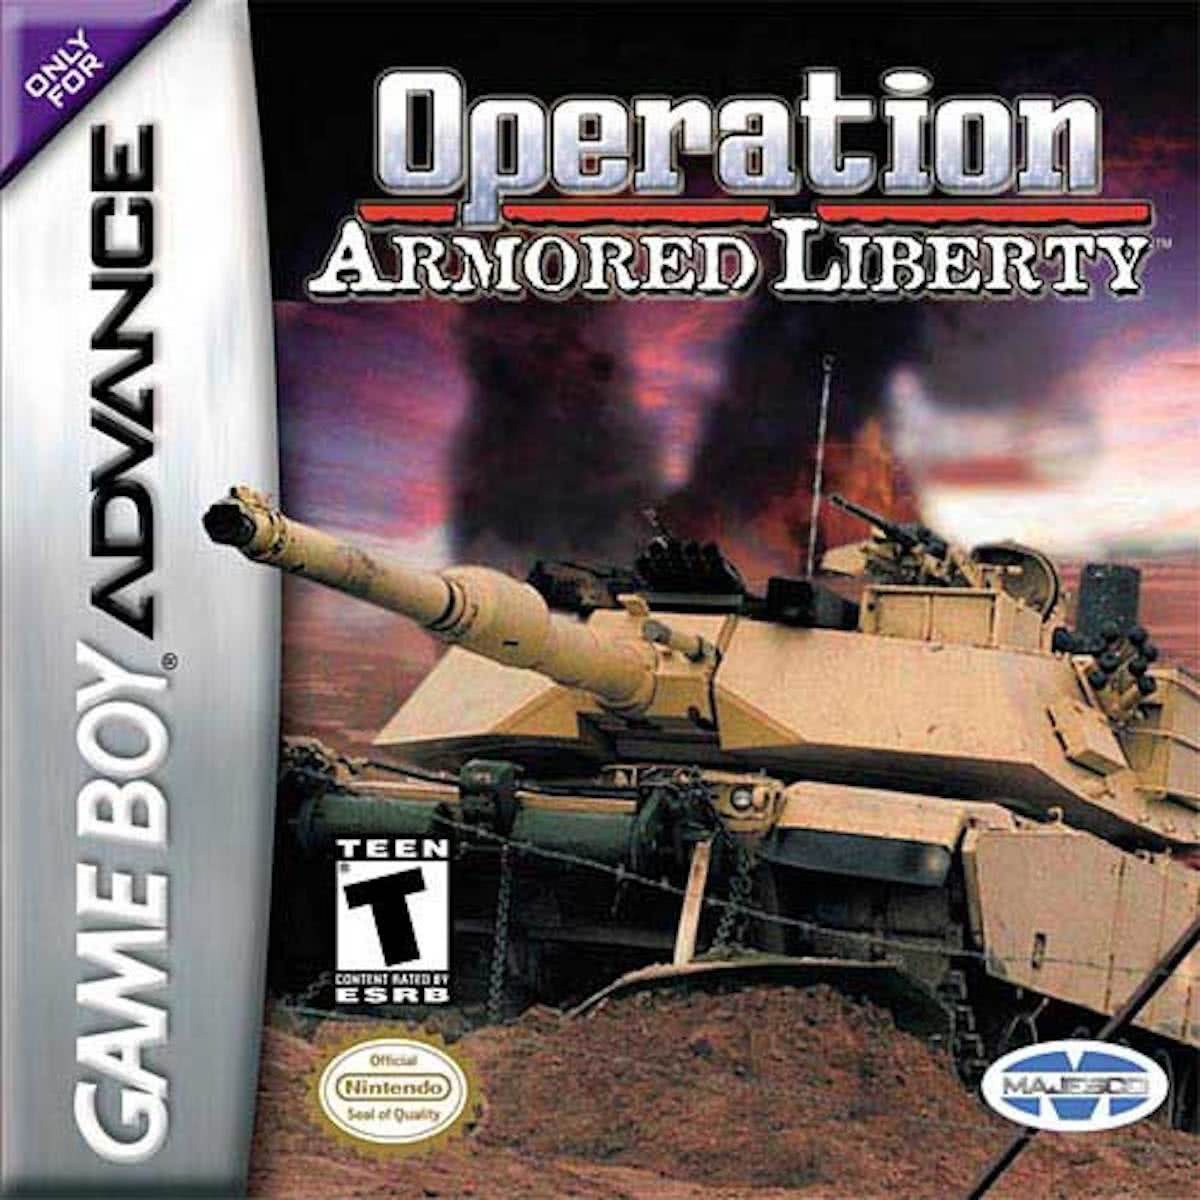 Operation Armored Liberty (Gameboy Advance)